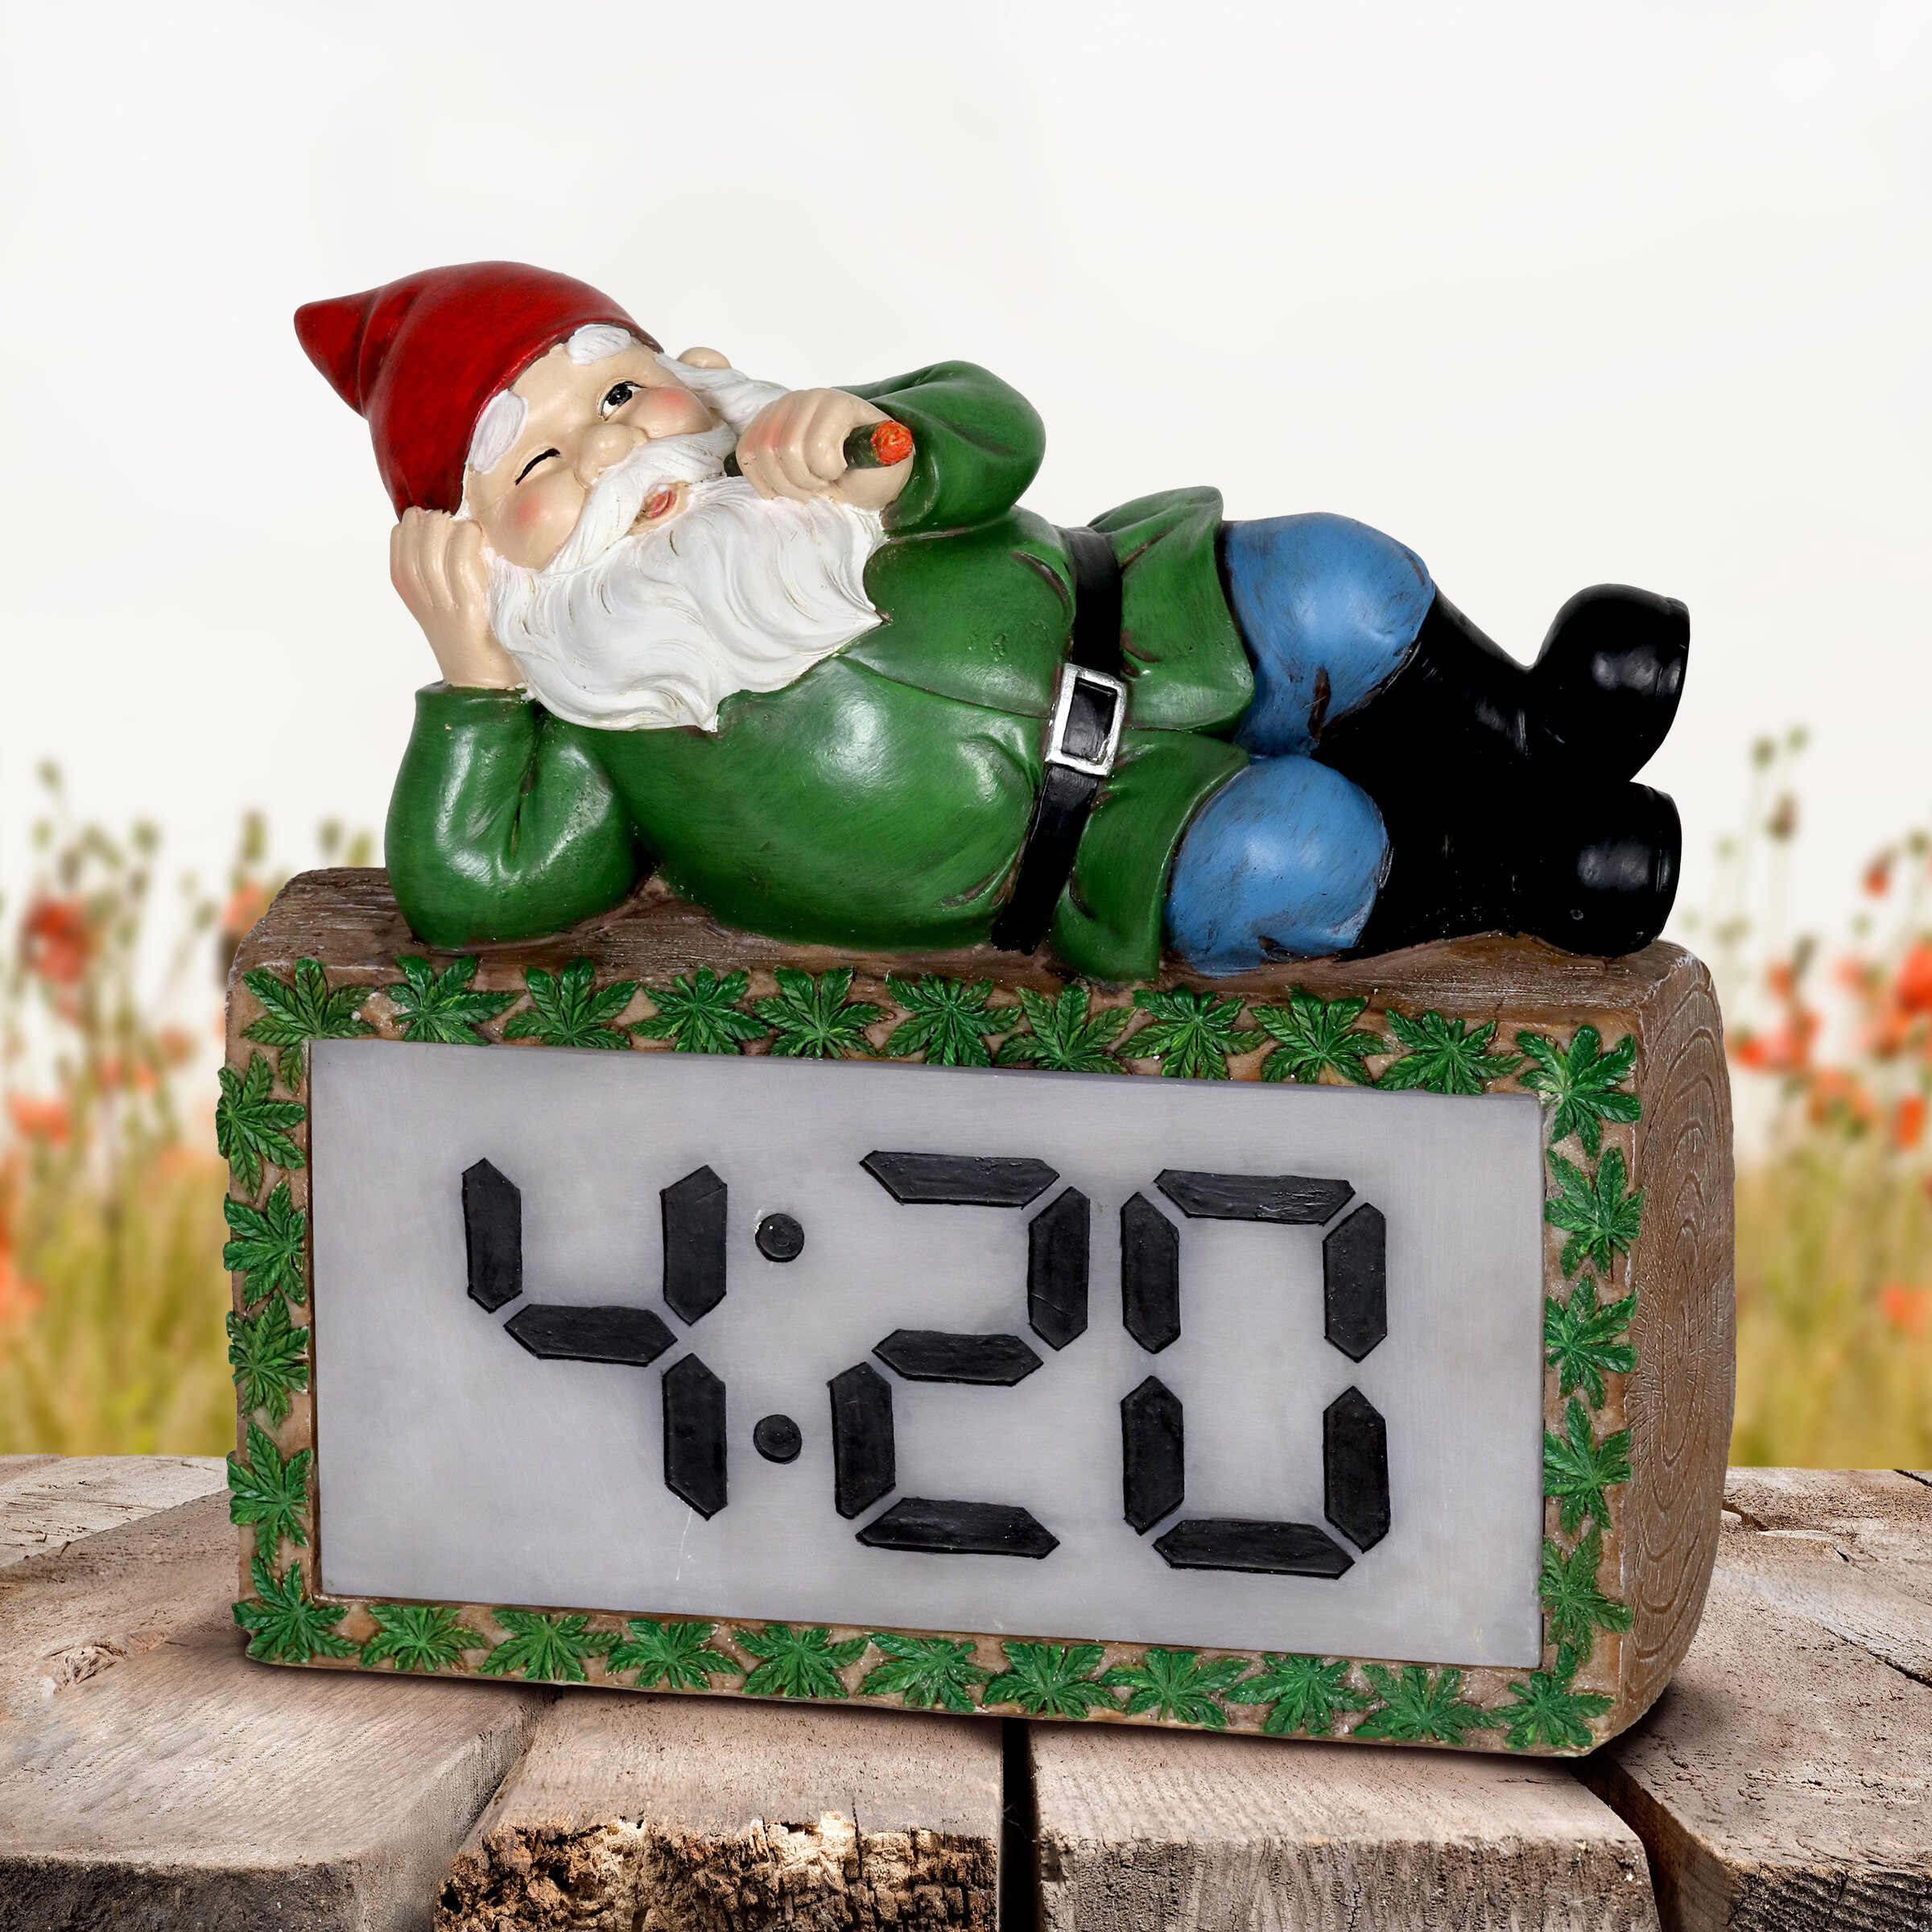 Smoking Gnome with LED 4:20 Clock Statue